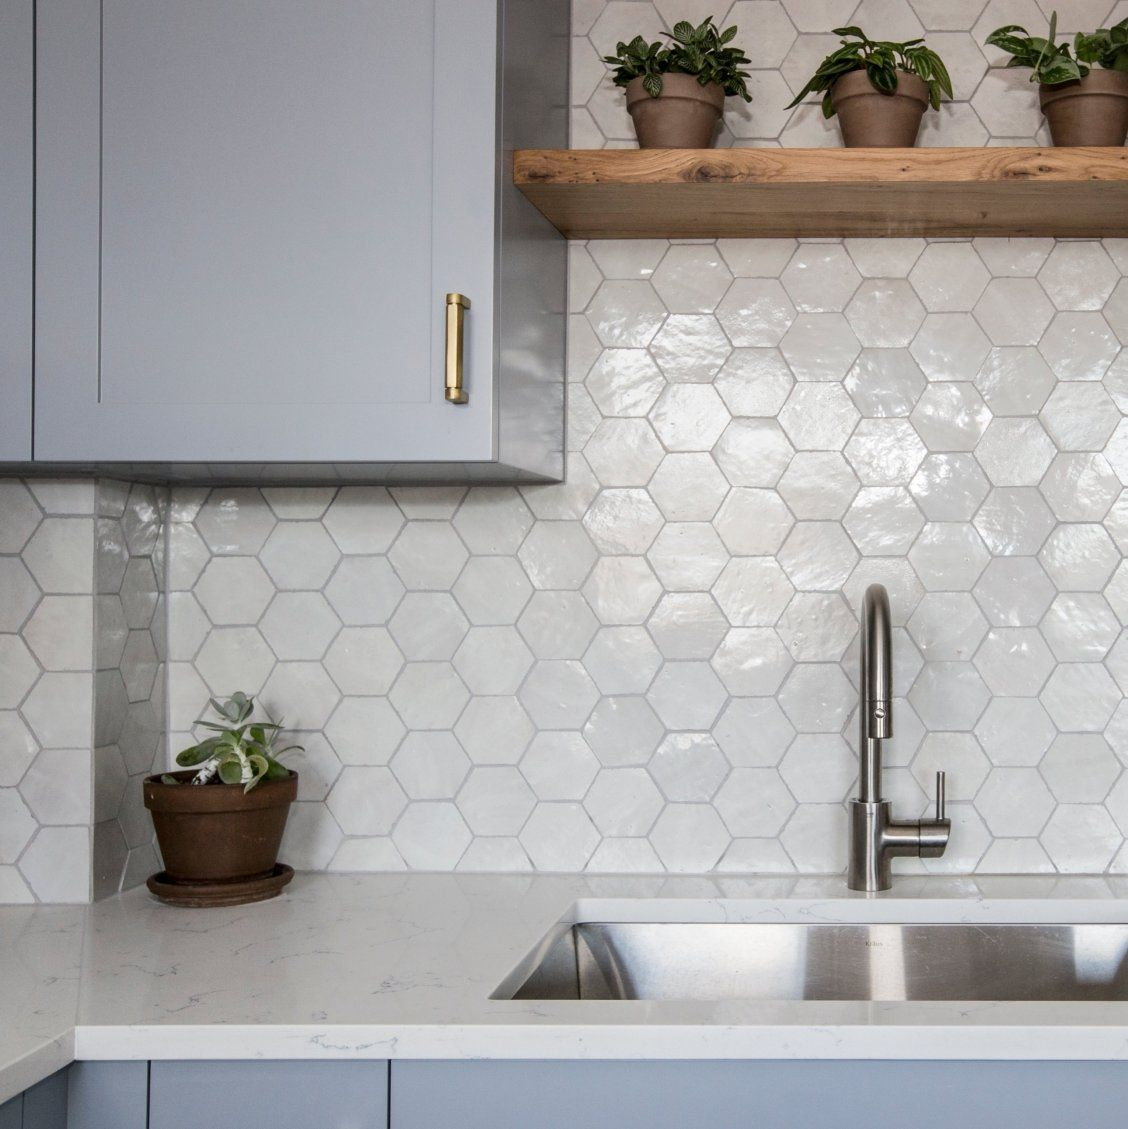 details. fun installation of our glazed terracotta zellige in weathered white hexagon tiles in this kitchen backsplash. notice the continuation through the corner. need assistance with trim? just ask clé. #backsplash #zellige #kitchen #tile